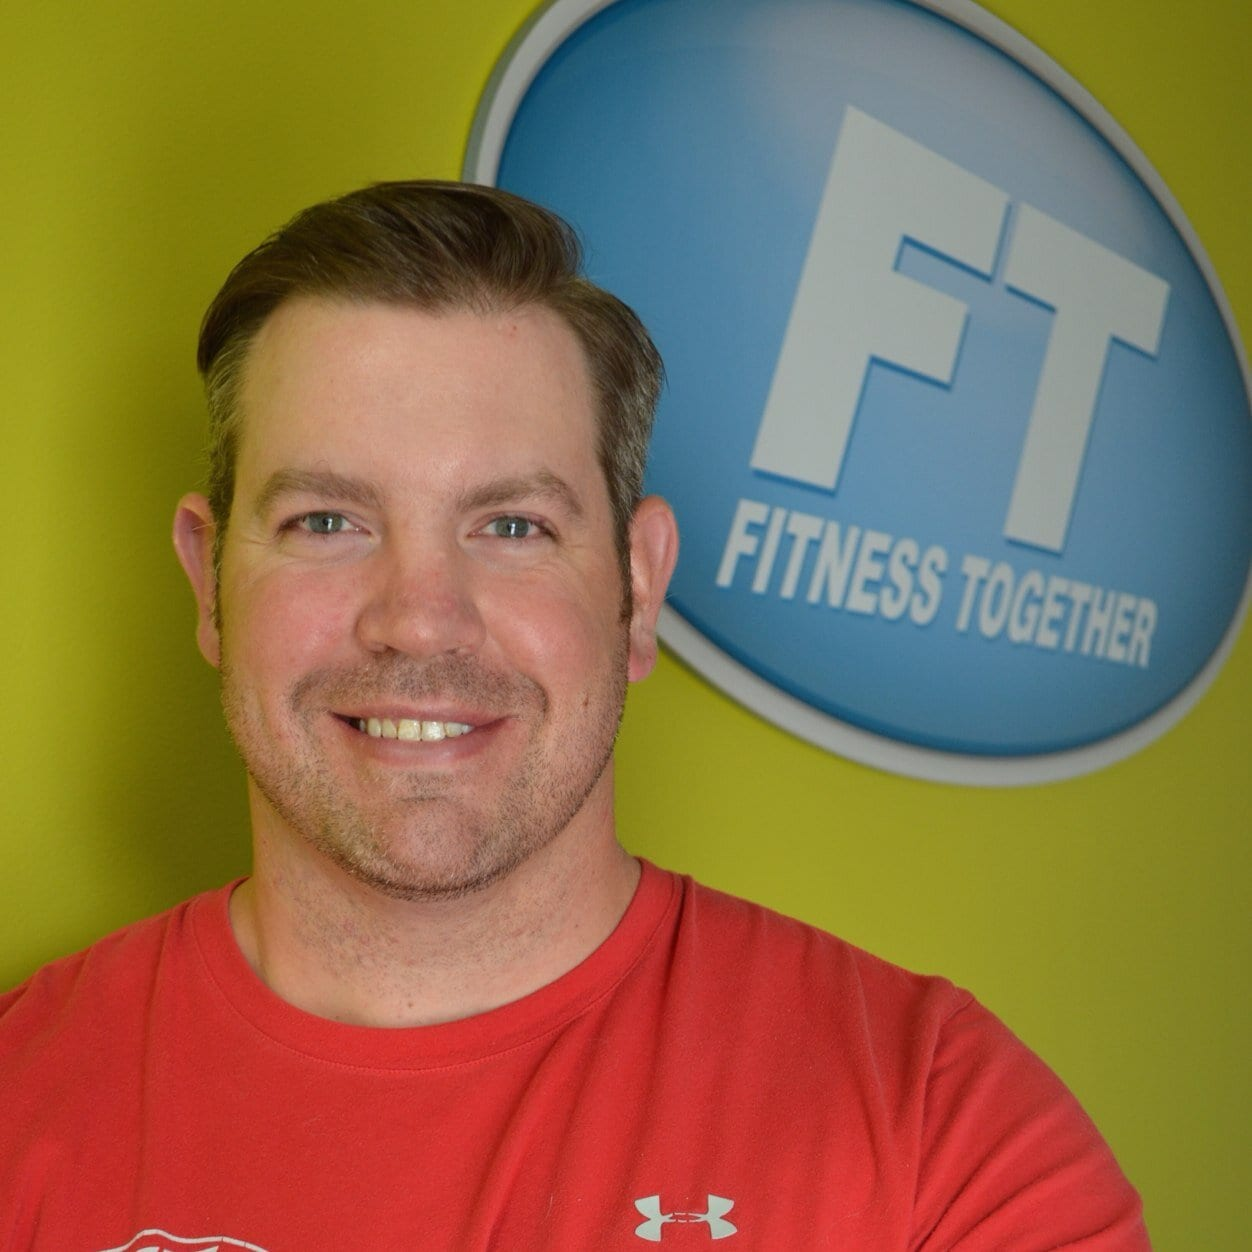 MIchael Watkins, Fitness Together